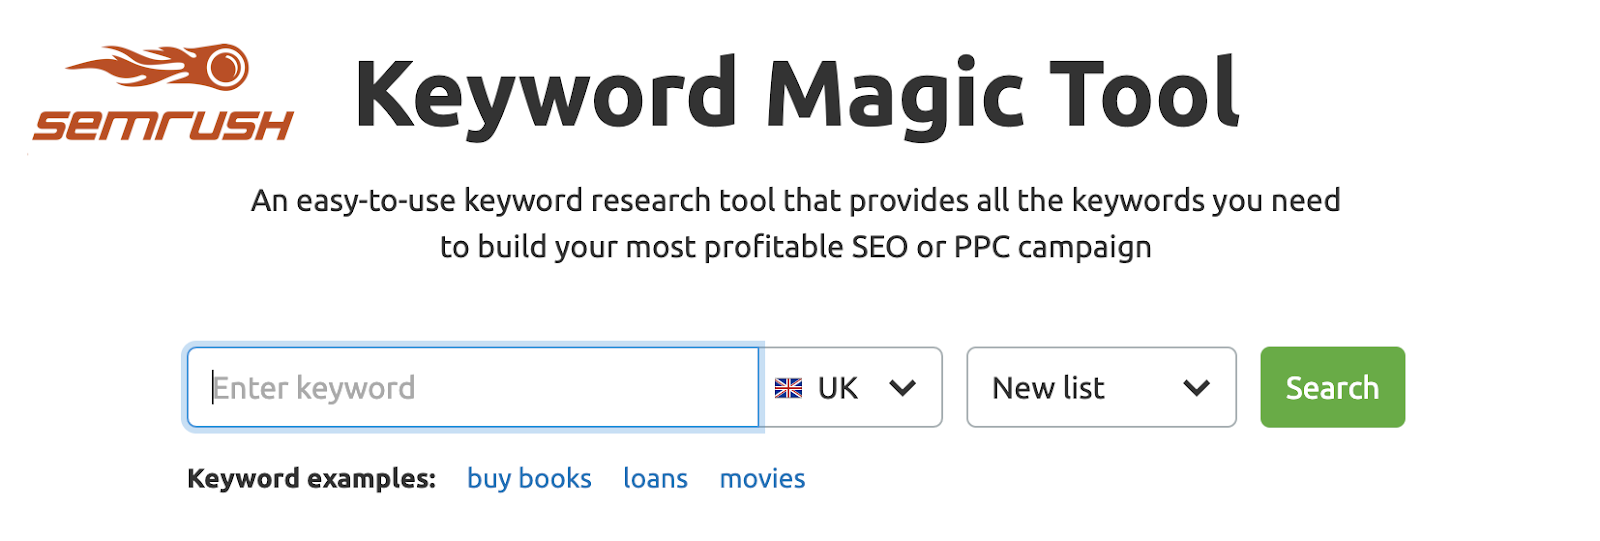 Keyword Magic Tool by SEMrush